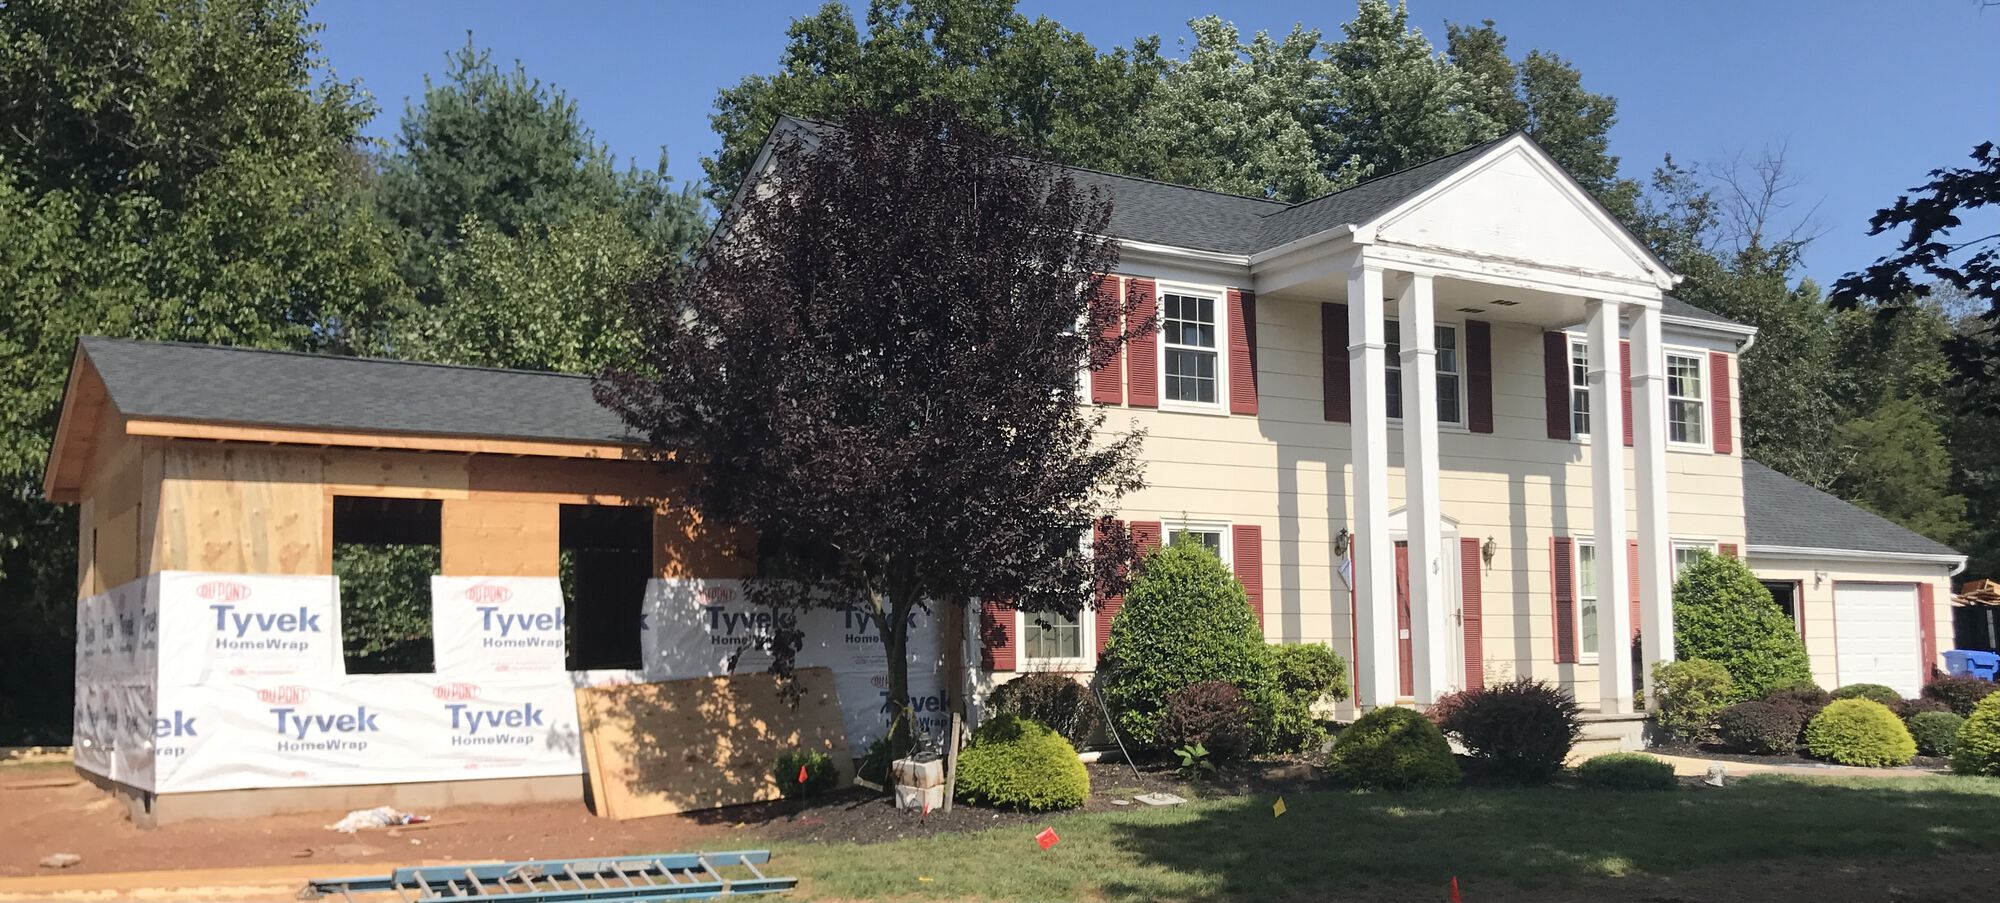 Family Room Addition, Prodigy Siding, GAF Roofing, Mezzo Windows, Gutters and Trim in Hillsborough, Somerset County NJ